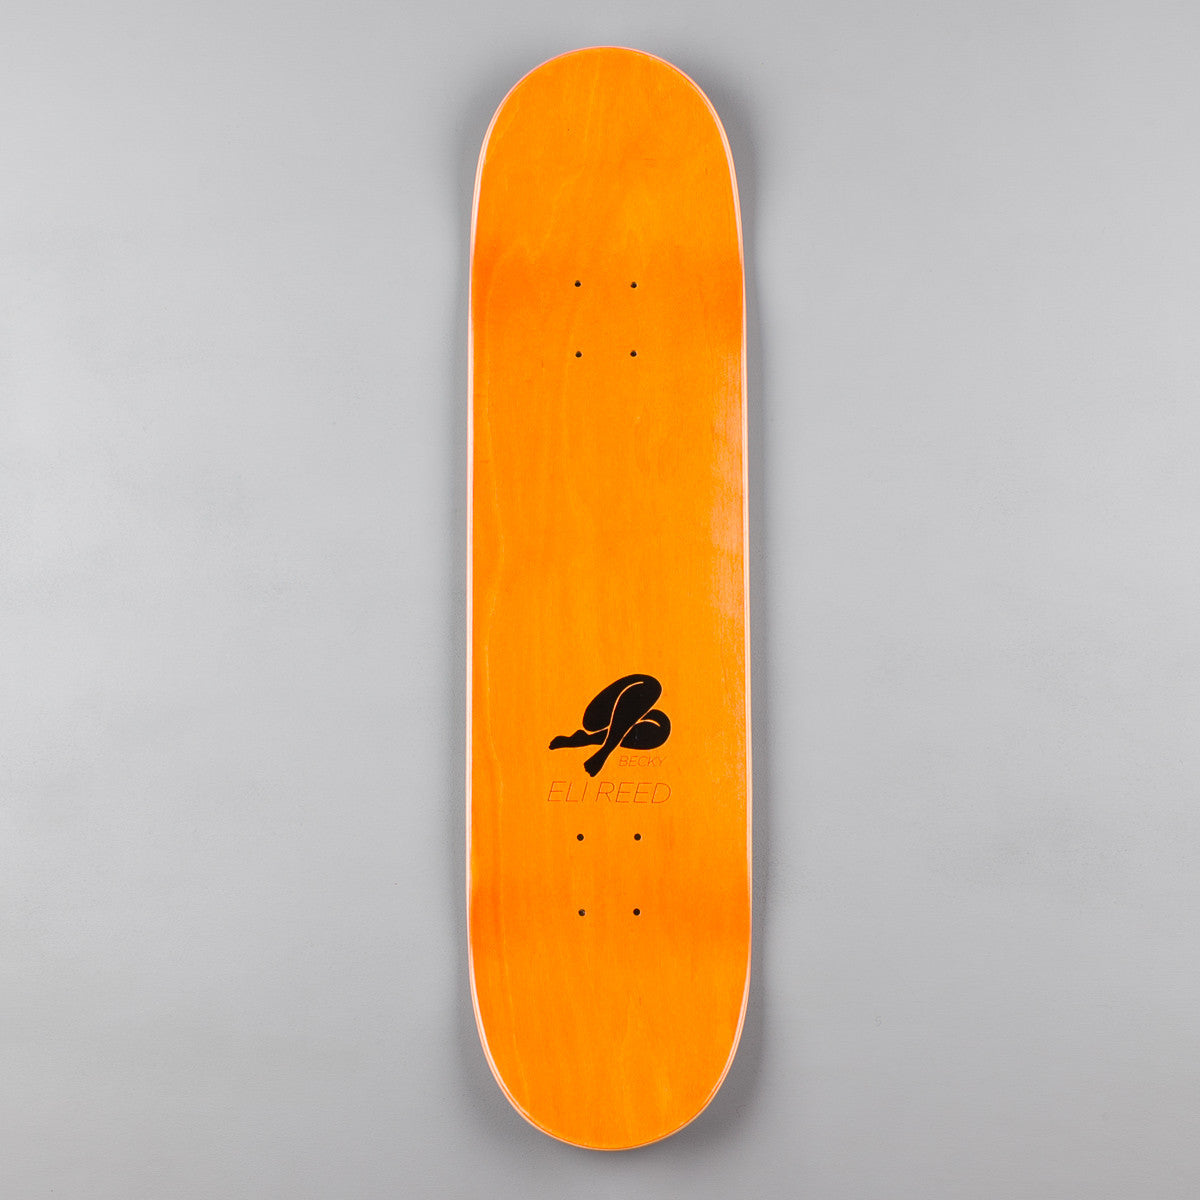 Becky Factory Eli Reed Pro Deck - 8.25""